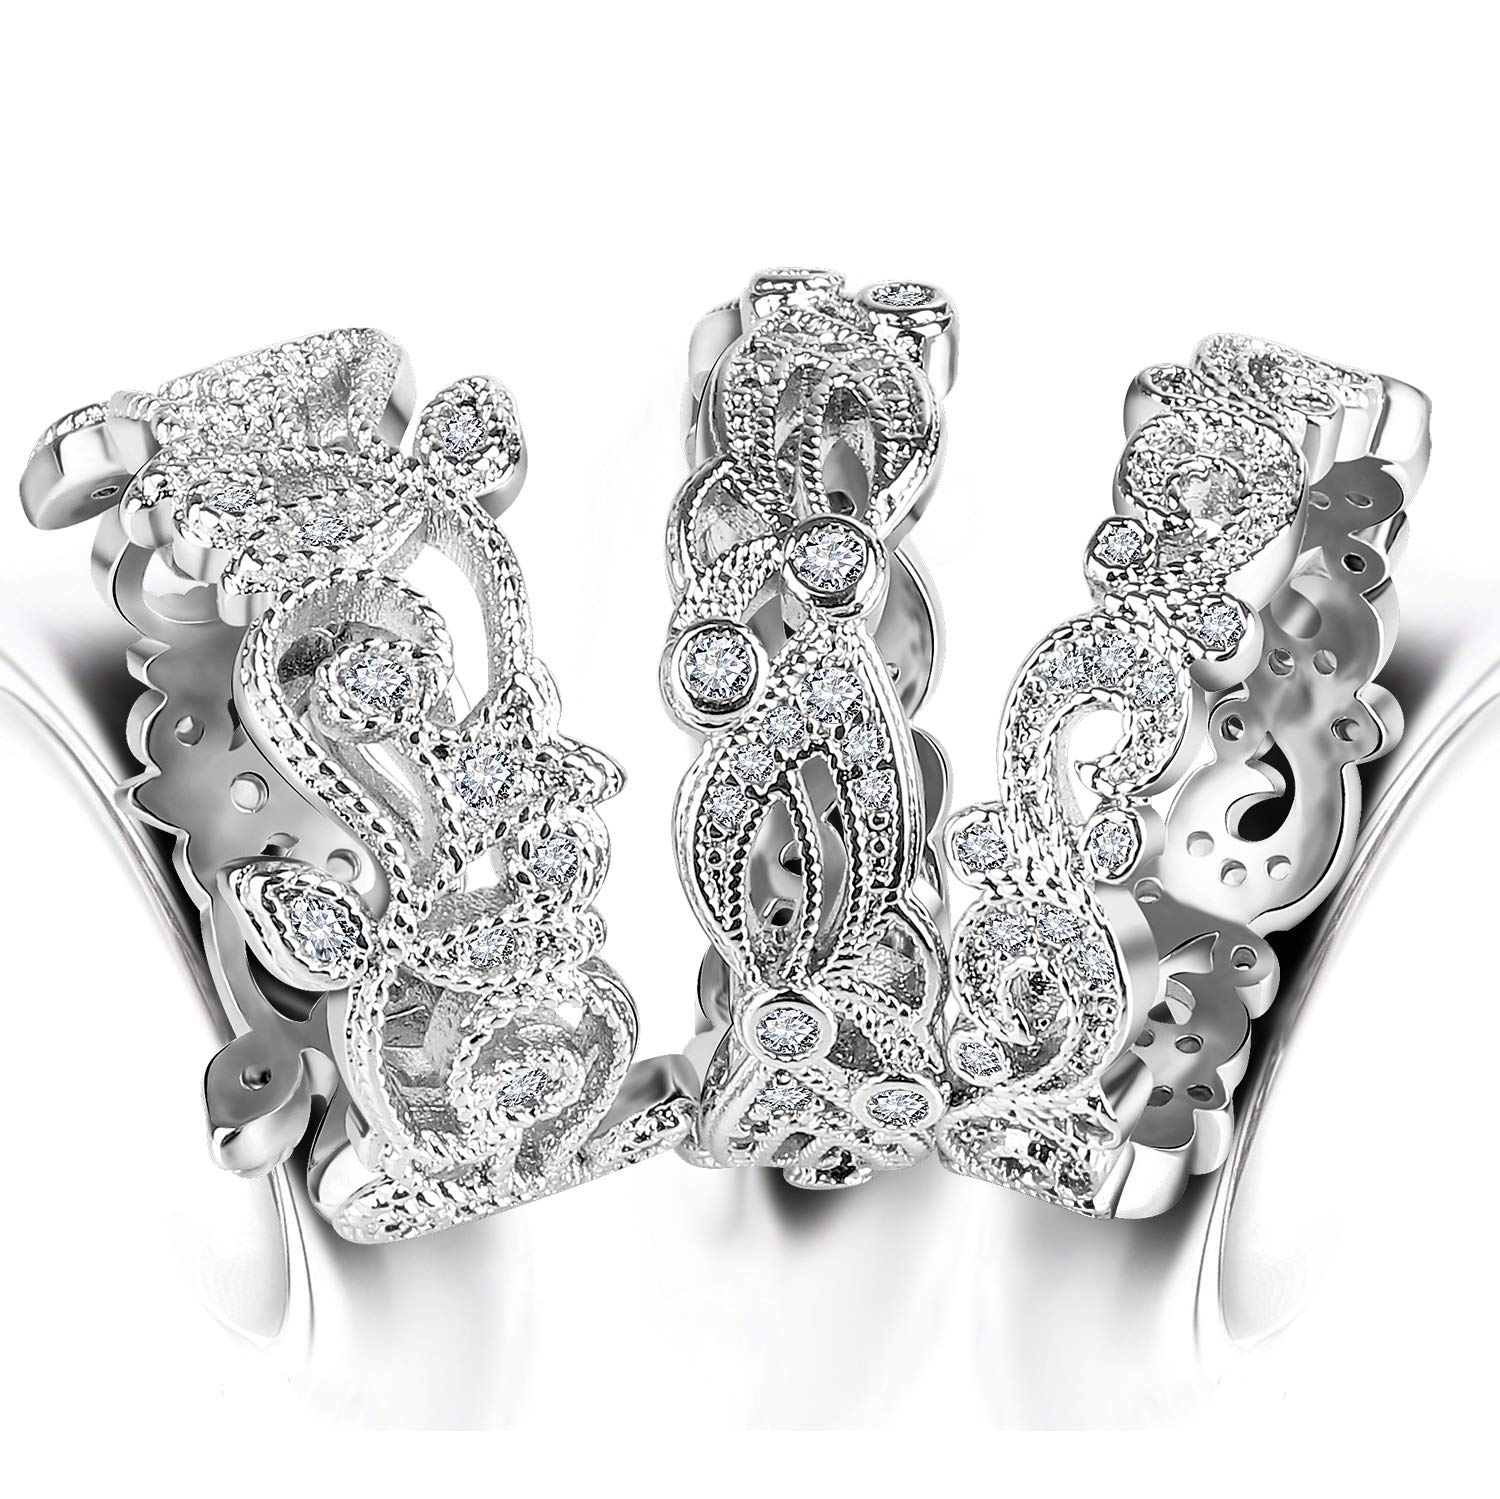 3 PCS Filigree Band Bridal Sets - Hollow Floral Vine Swirl Wave Promise Eternity Wedding Band Stackable Rings for Women